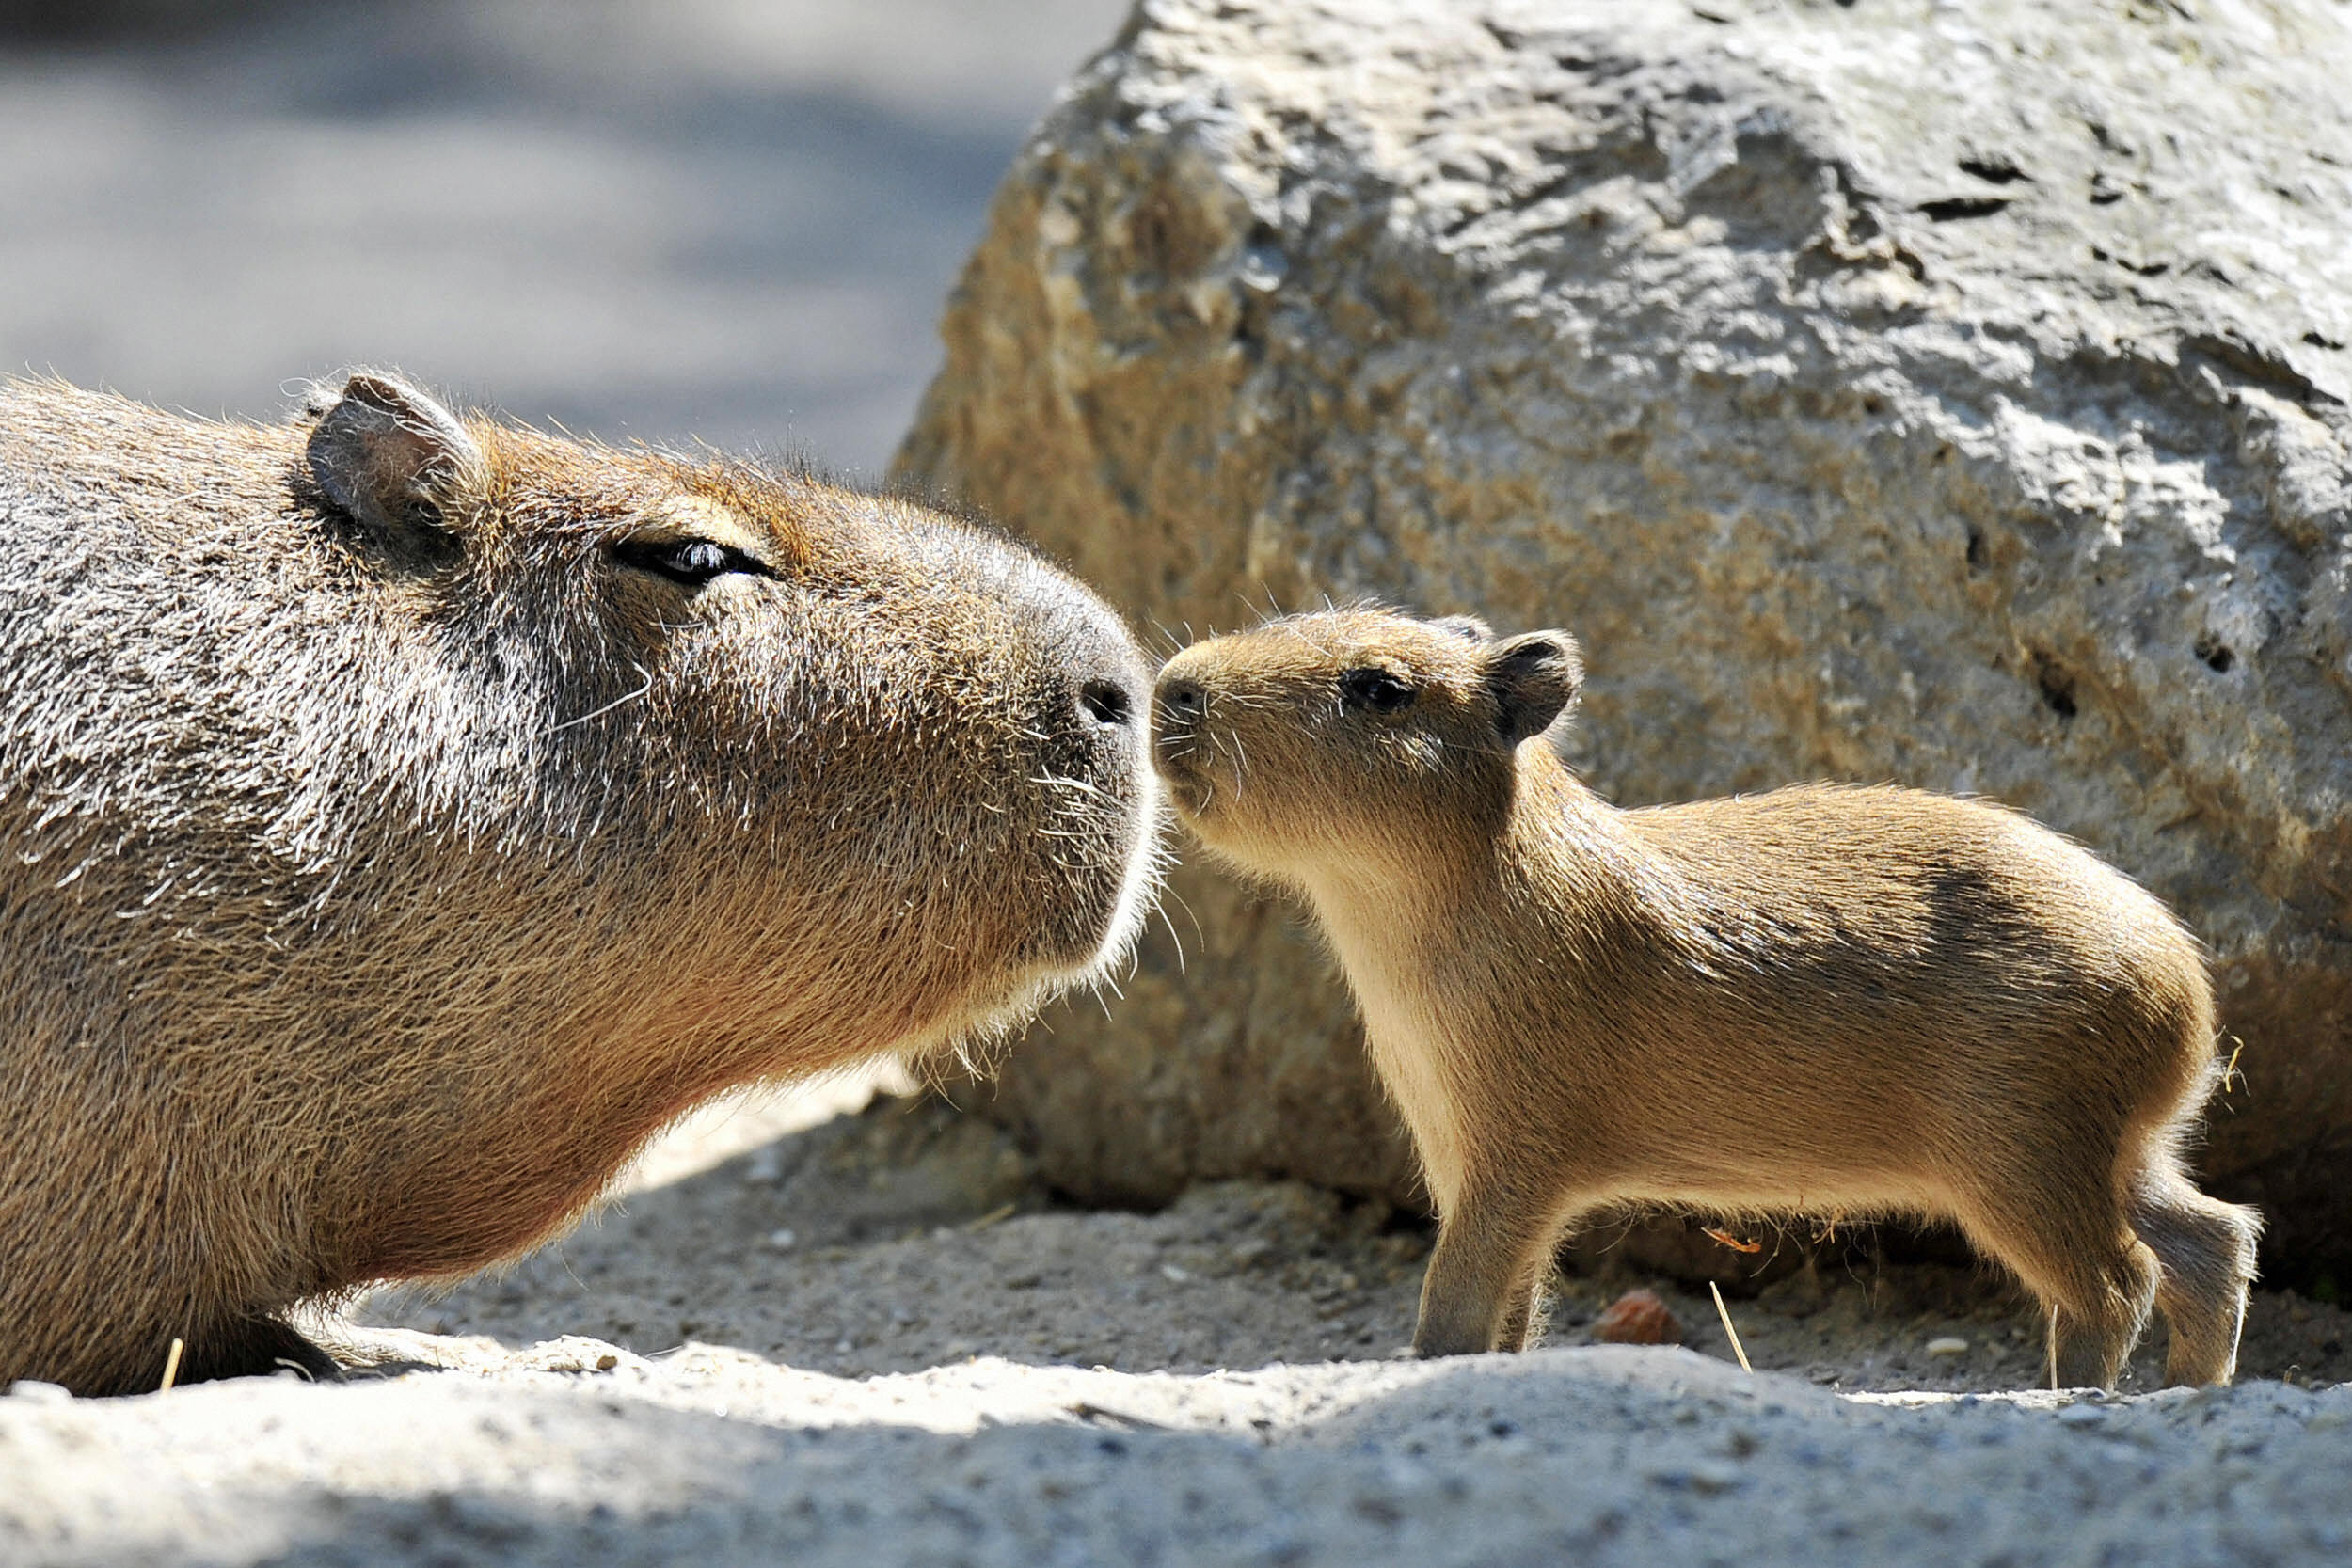 Joejoe The Capybara Has Some Very Unlikely Animal Bffs